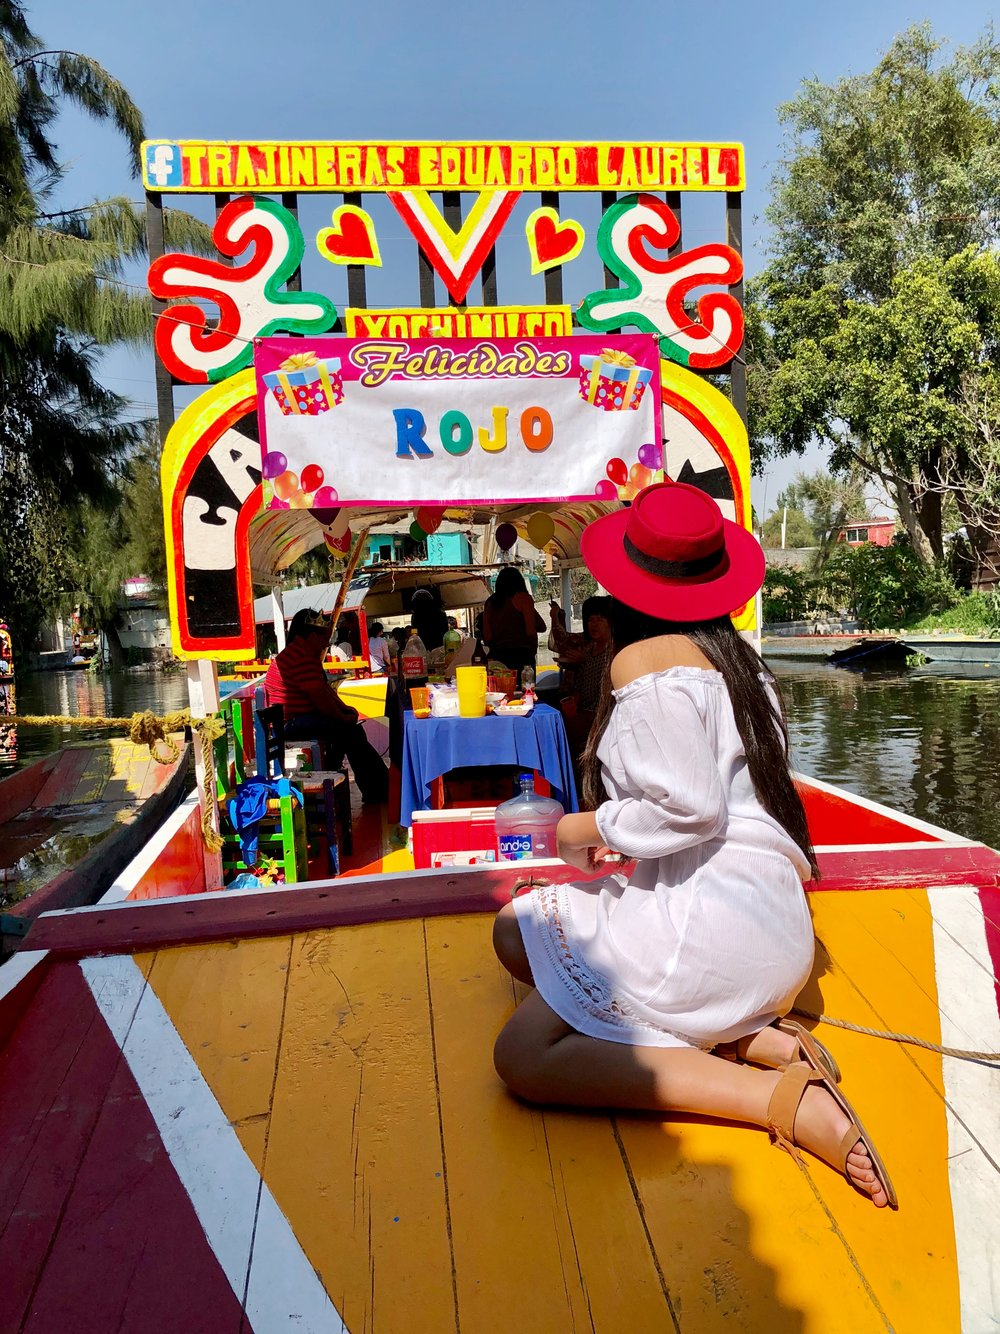 Scored a  trajinera (wooden boat) of our own in the canals of Xochimilco